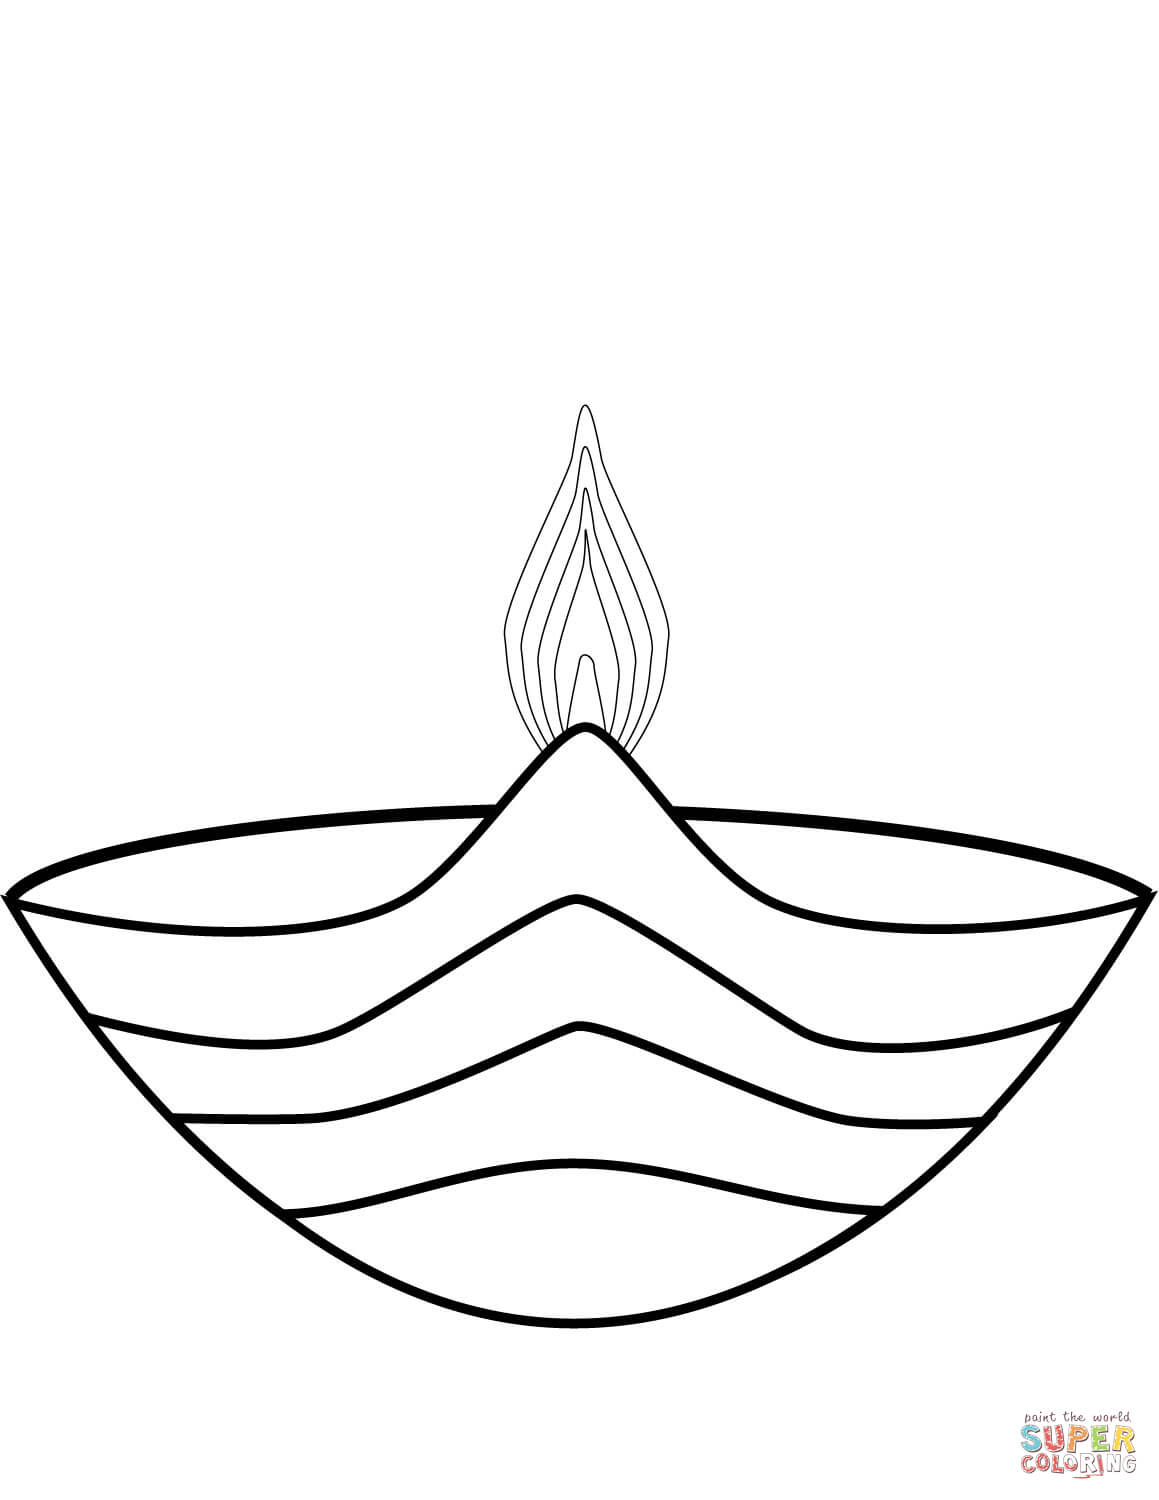 Diwali Black And White Pictures Symbol Of Diwali Coloring Page Free Printable Coloring Pages